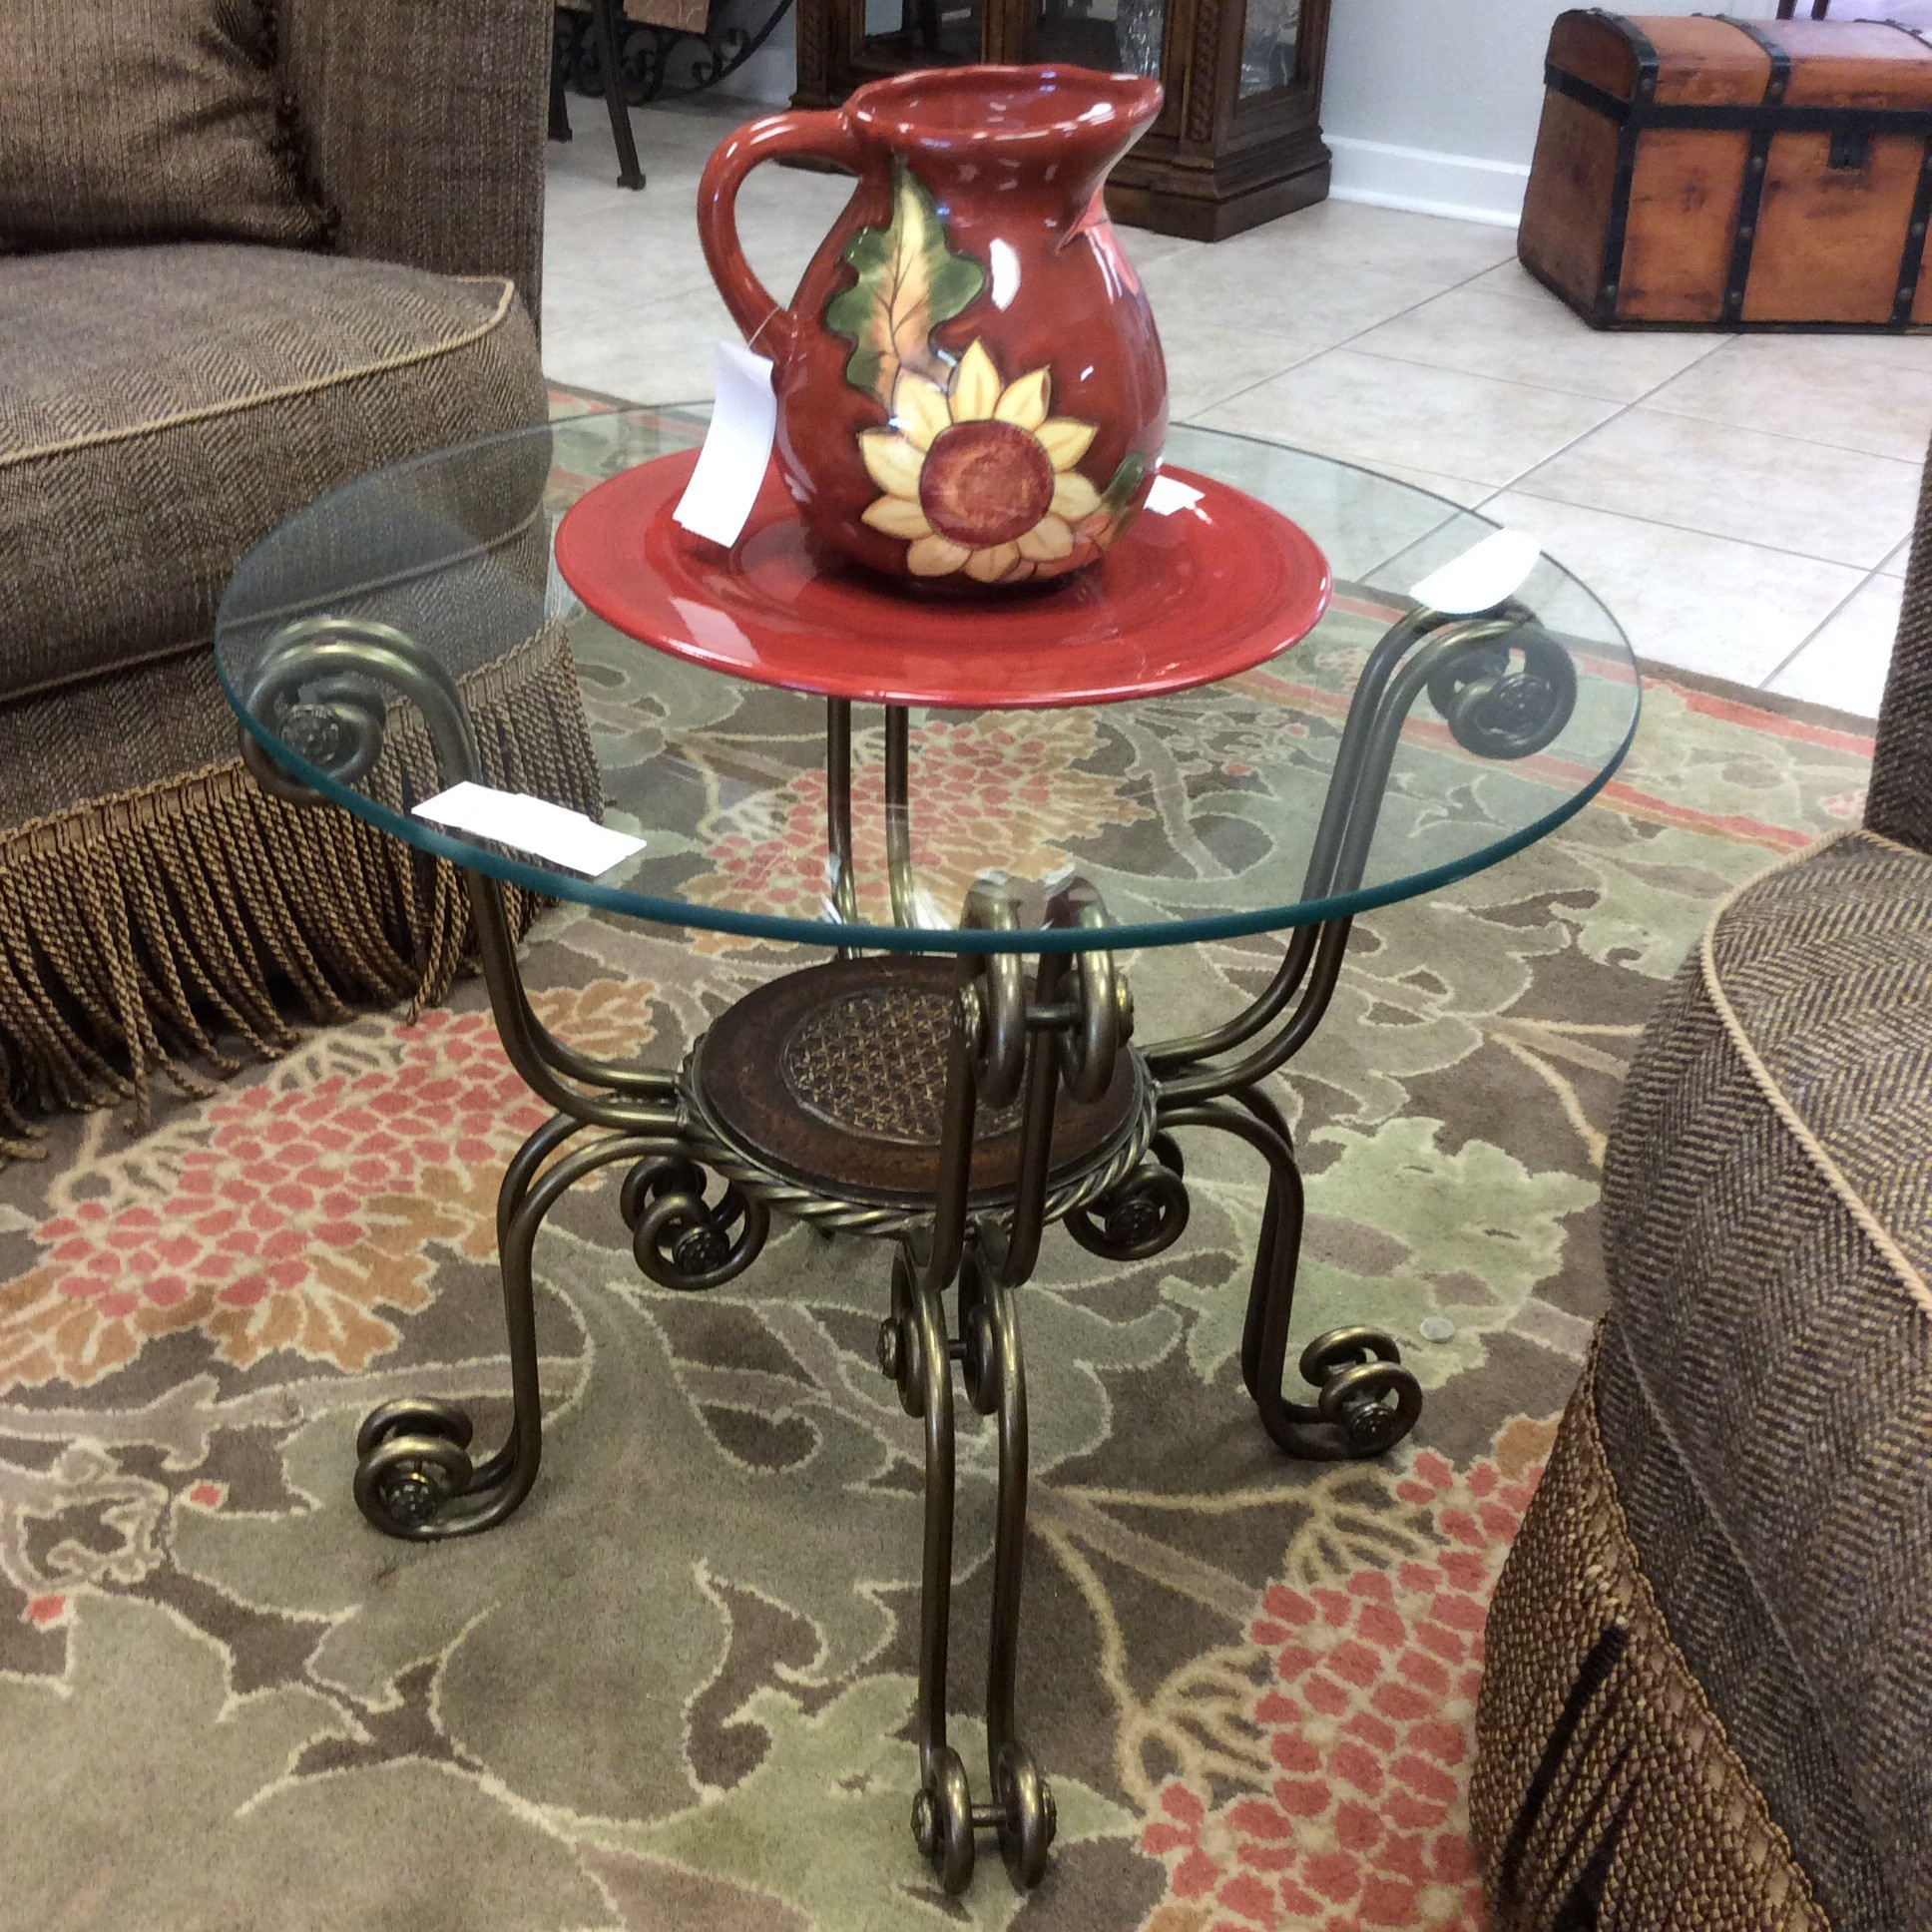 What a lovely combination of brass, glass and wood! On the smaller side, this side table is loaded with personality! The heavy glass top is supported by a base of scrolling burnished brass. The small center at the lower tier holds yet another charming detail - a small cain inlay. Lovely...